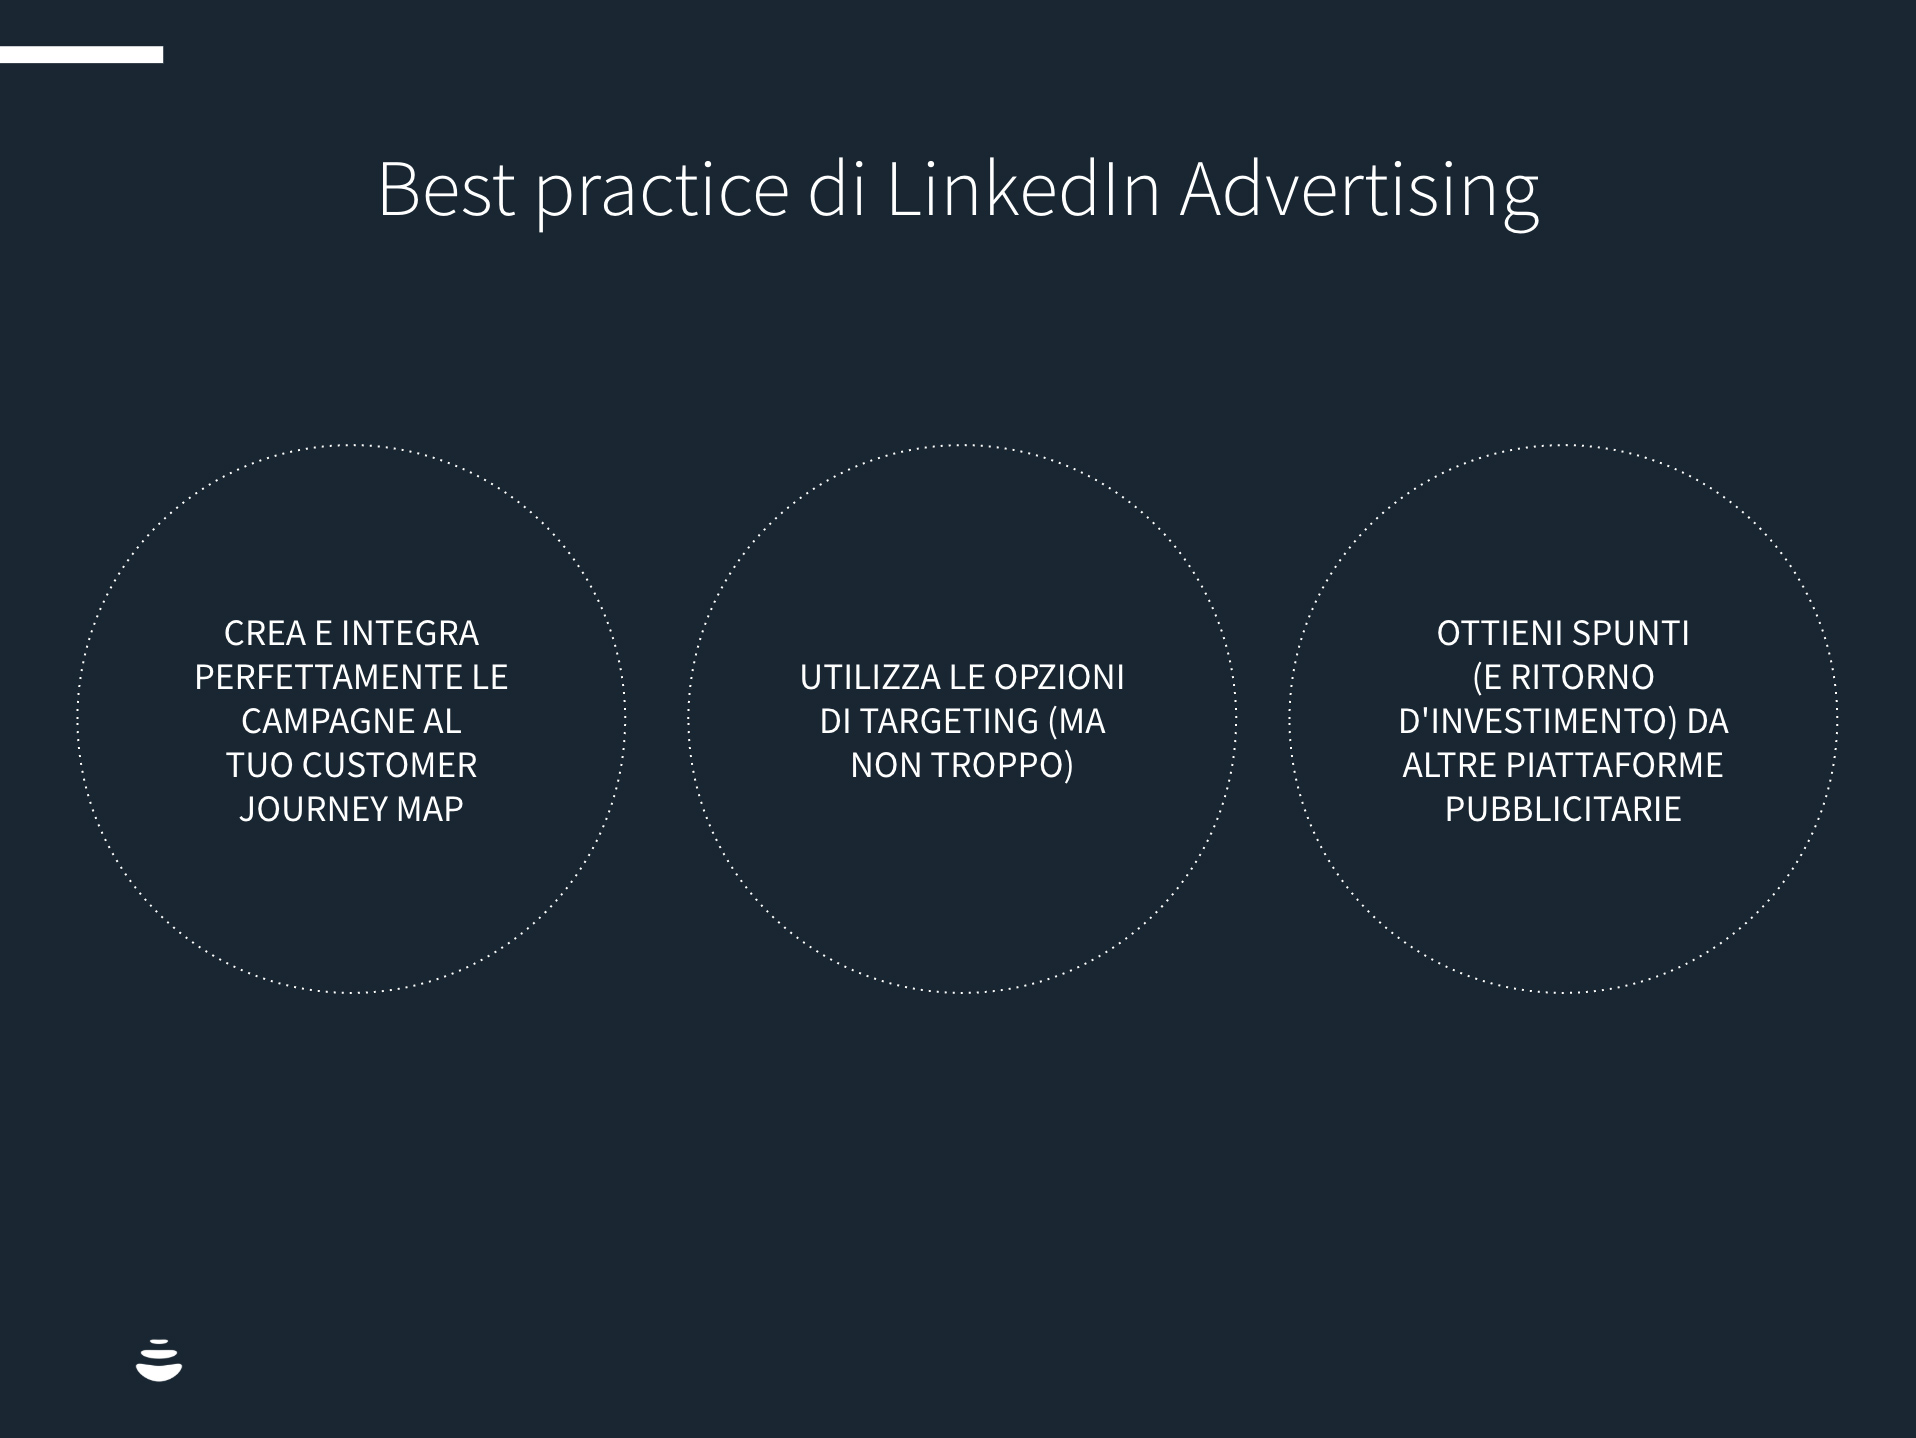 linkedin-advertising-best-practice